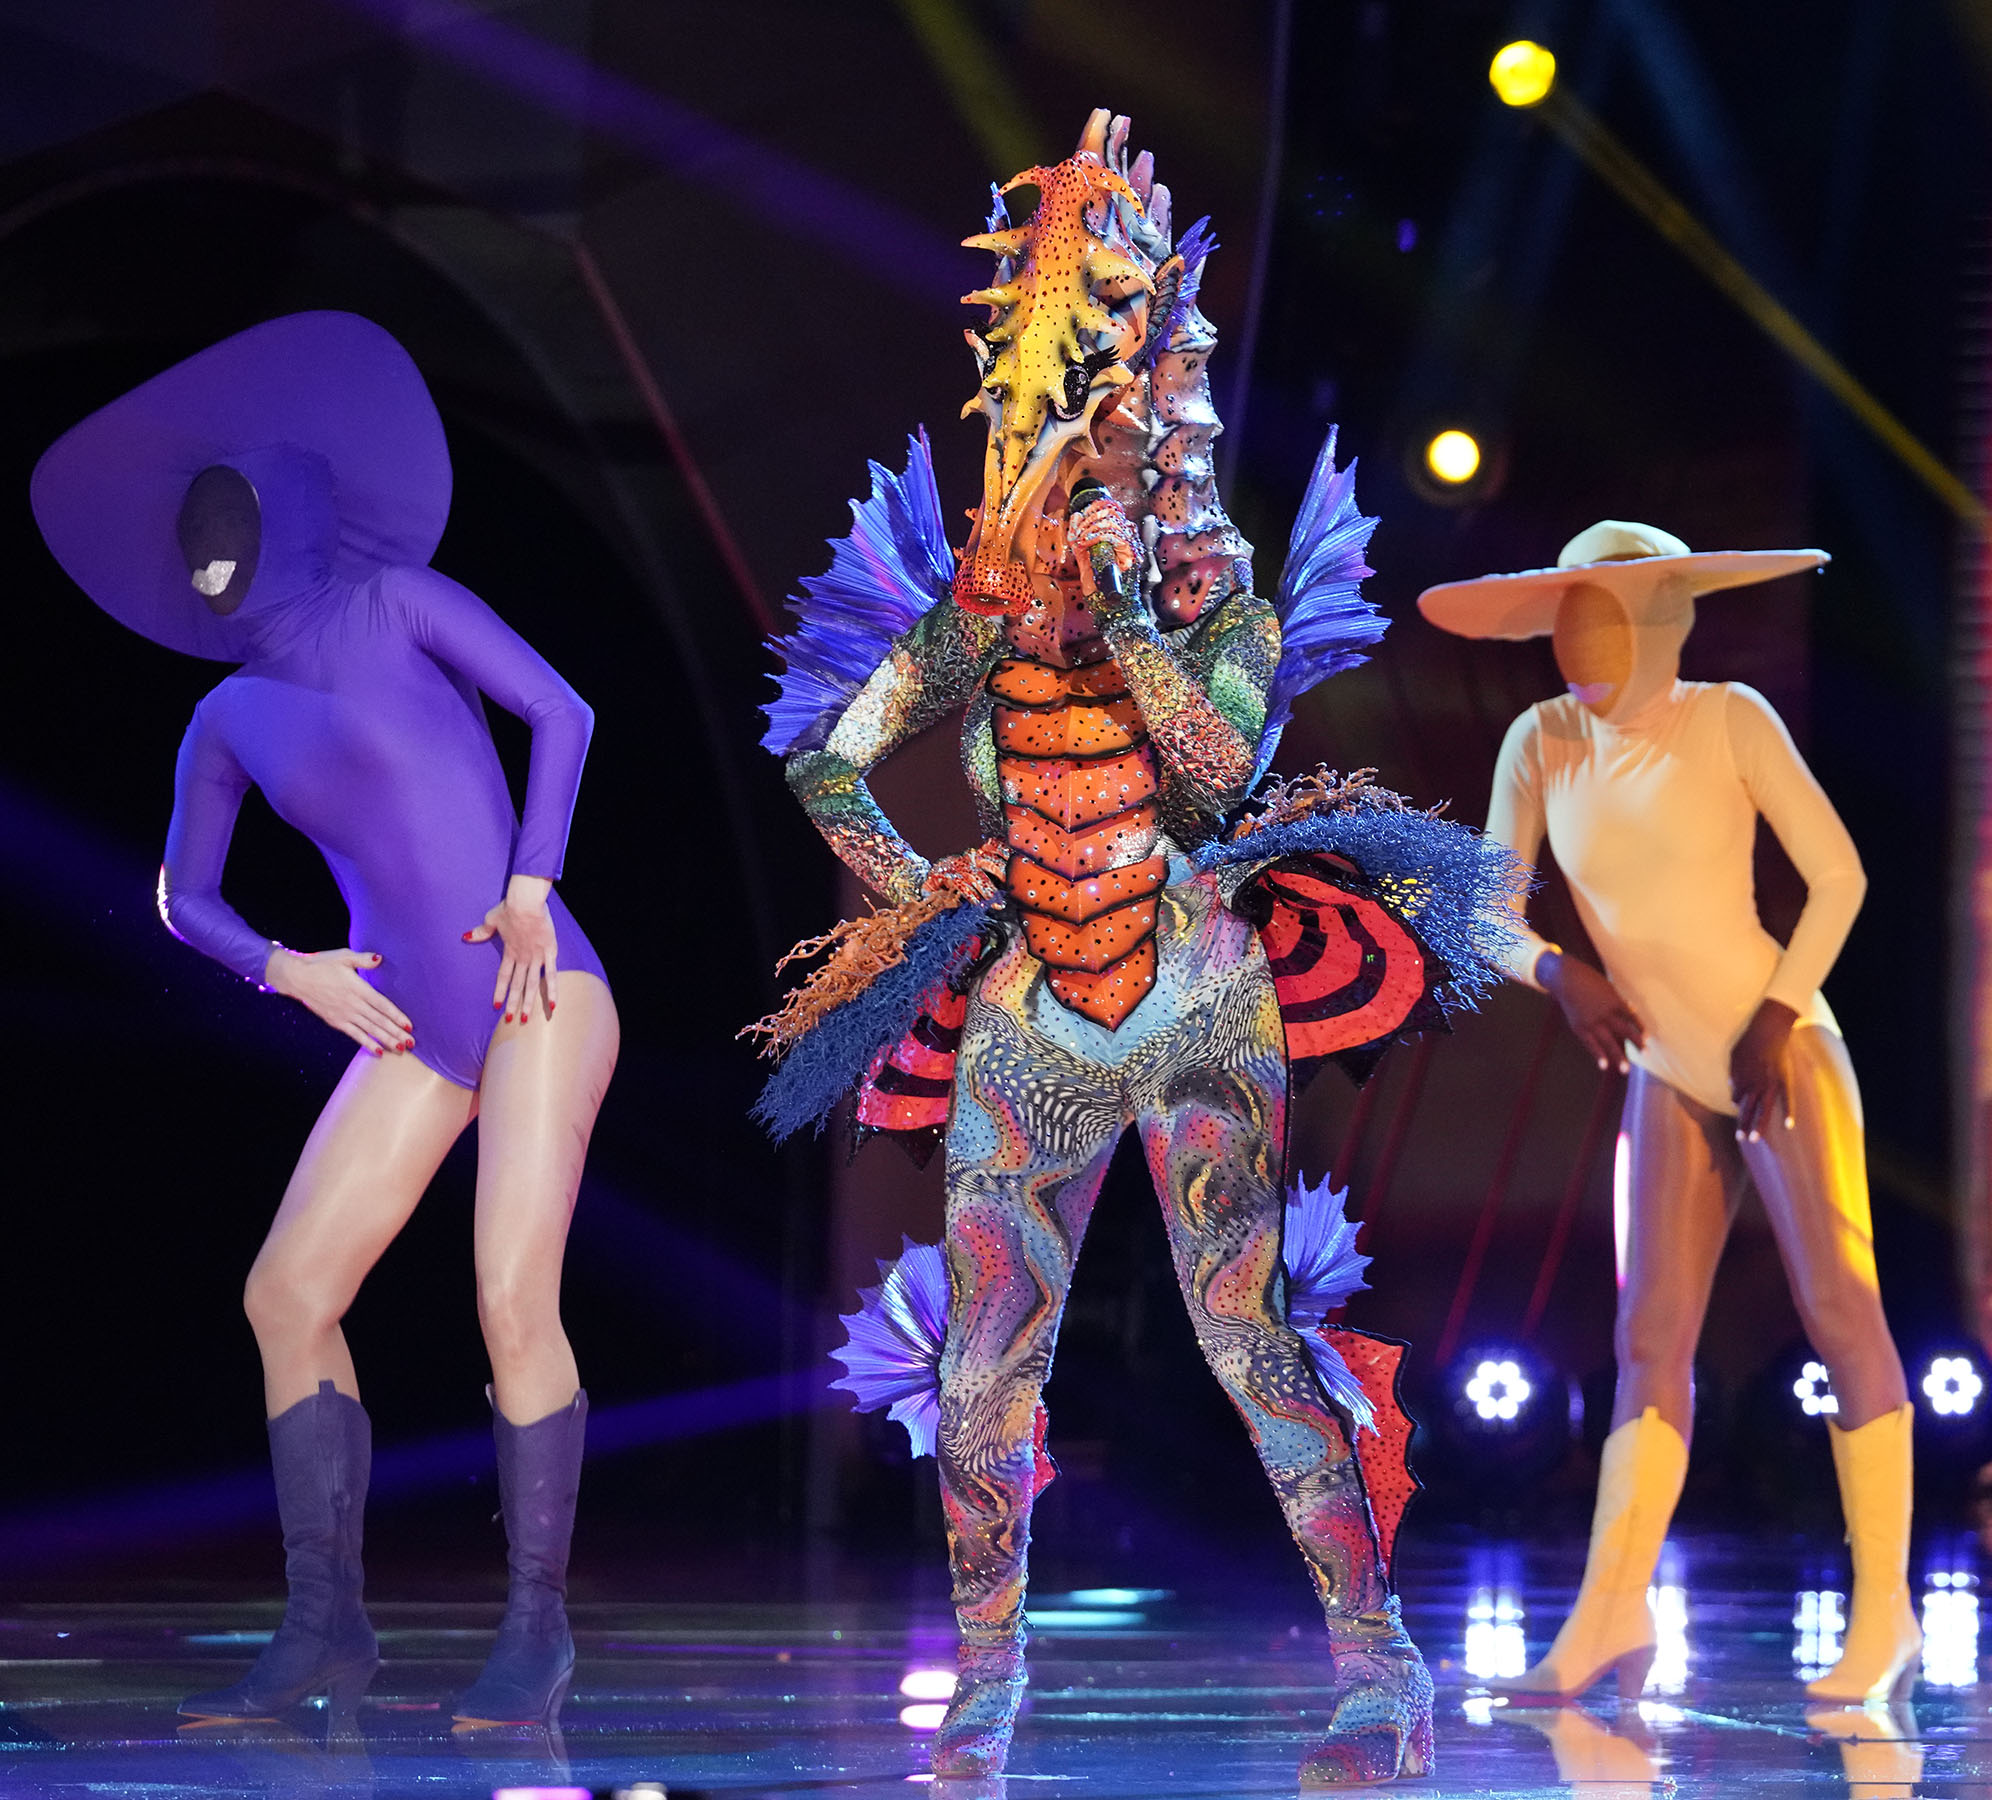 THE MASKED SINGER: Seahorse